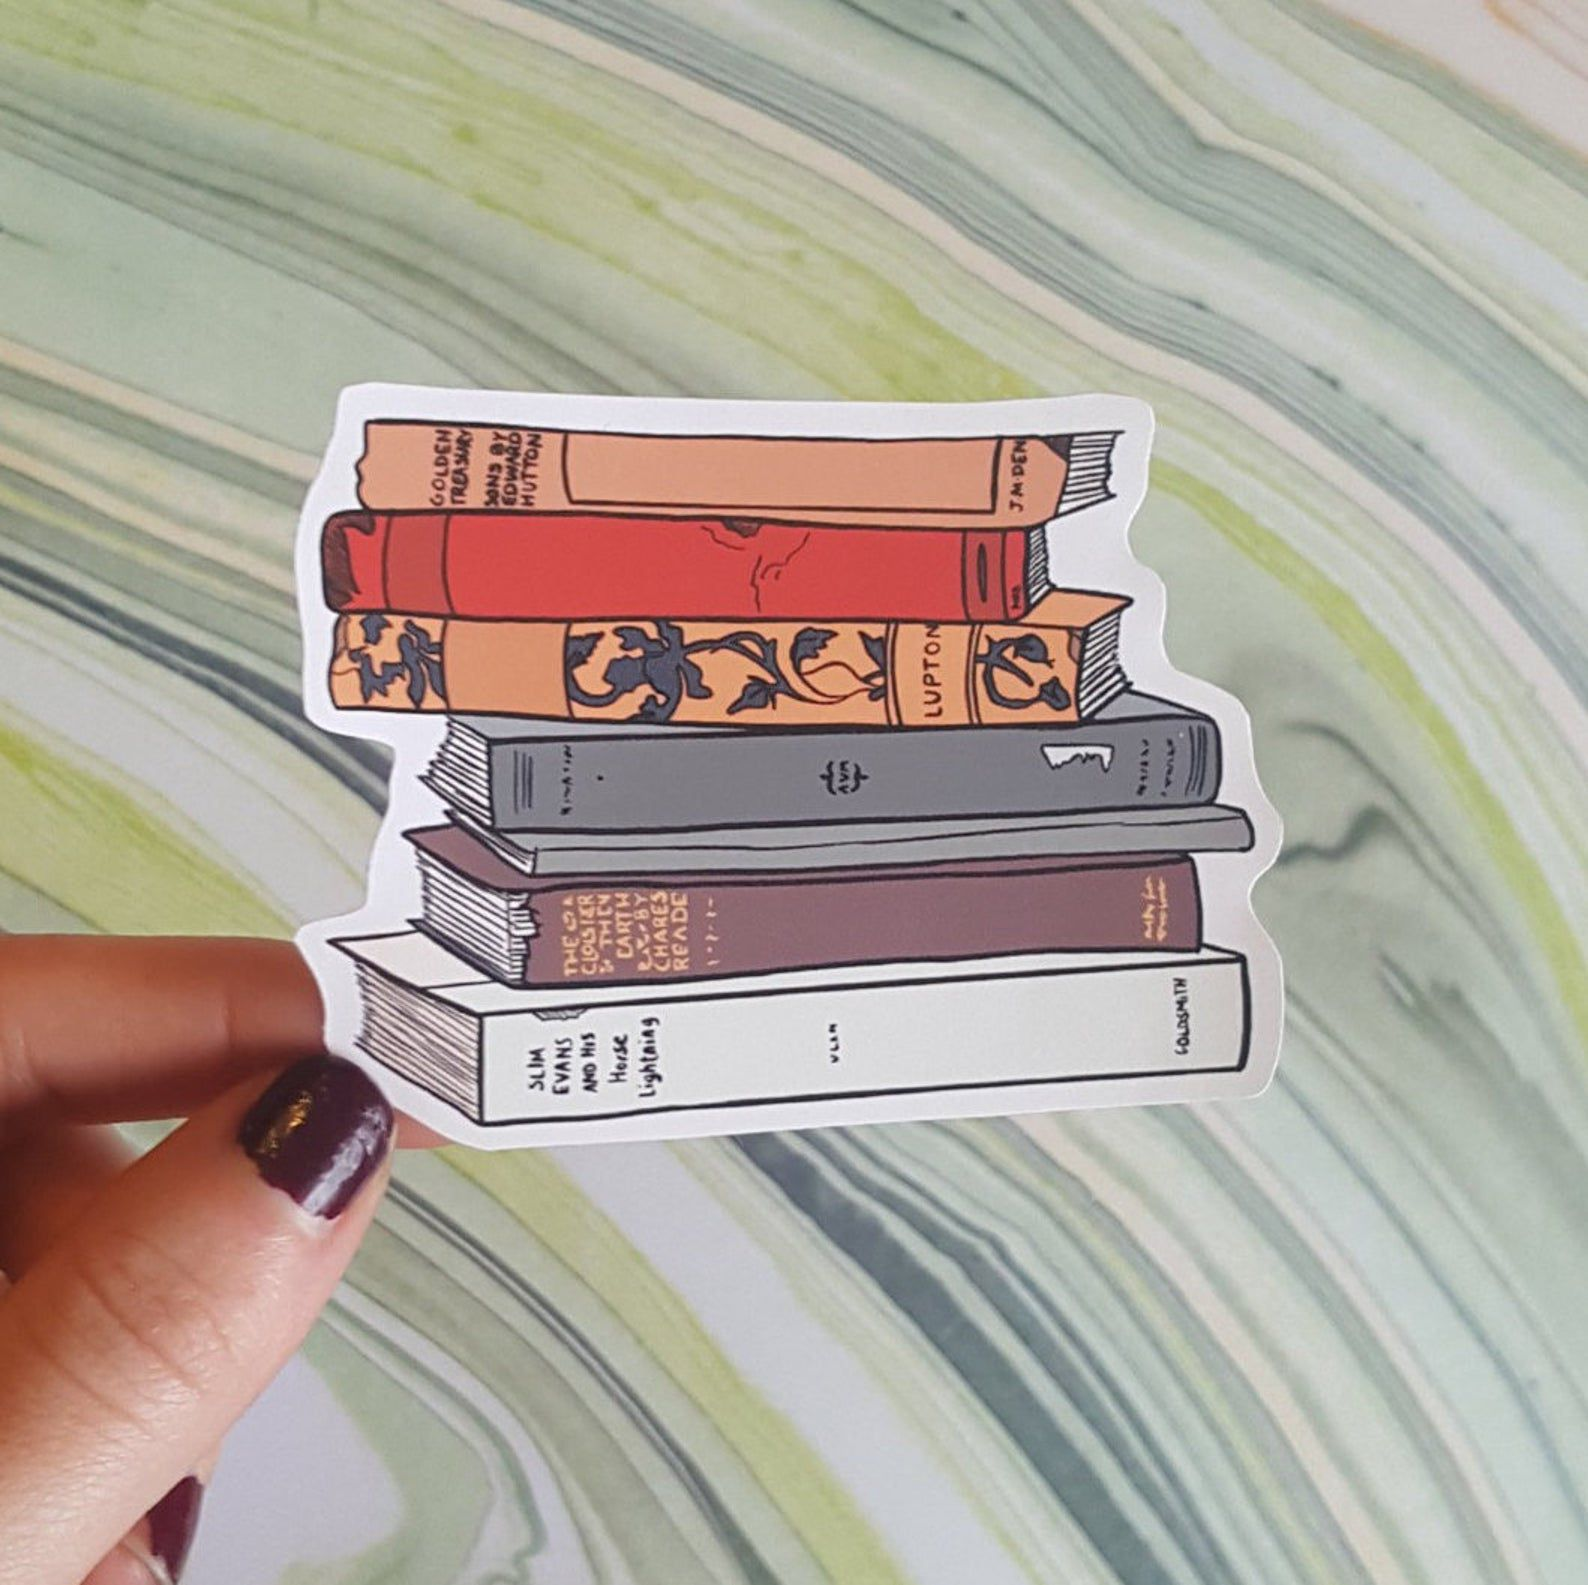 Image of a sticker with fall-colored book spines.